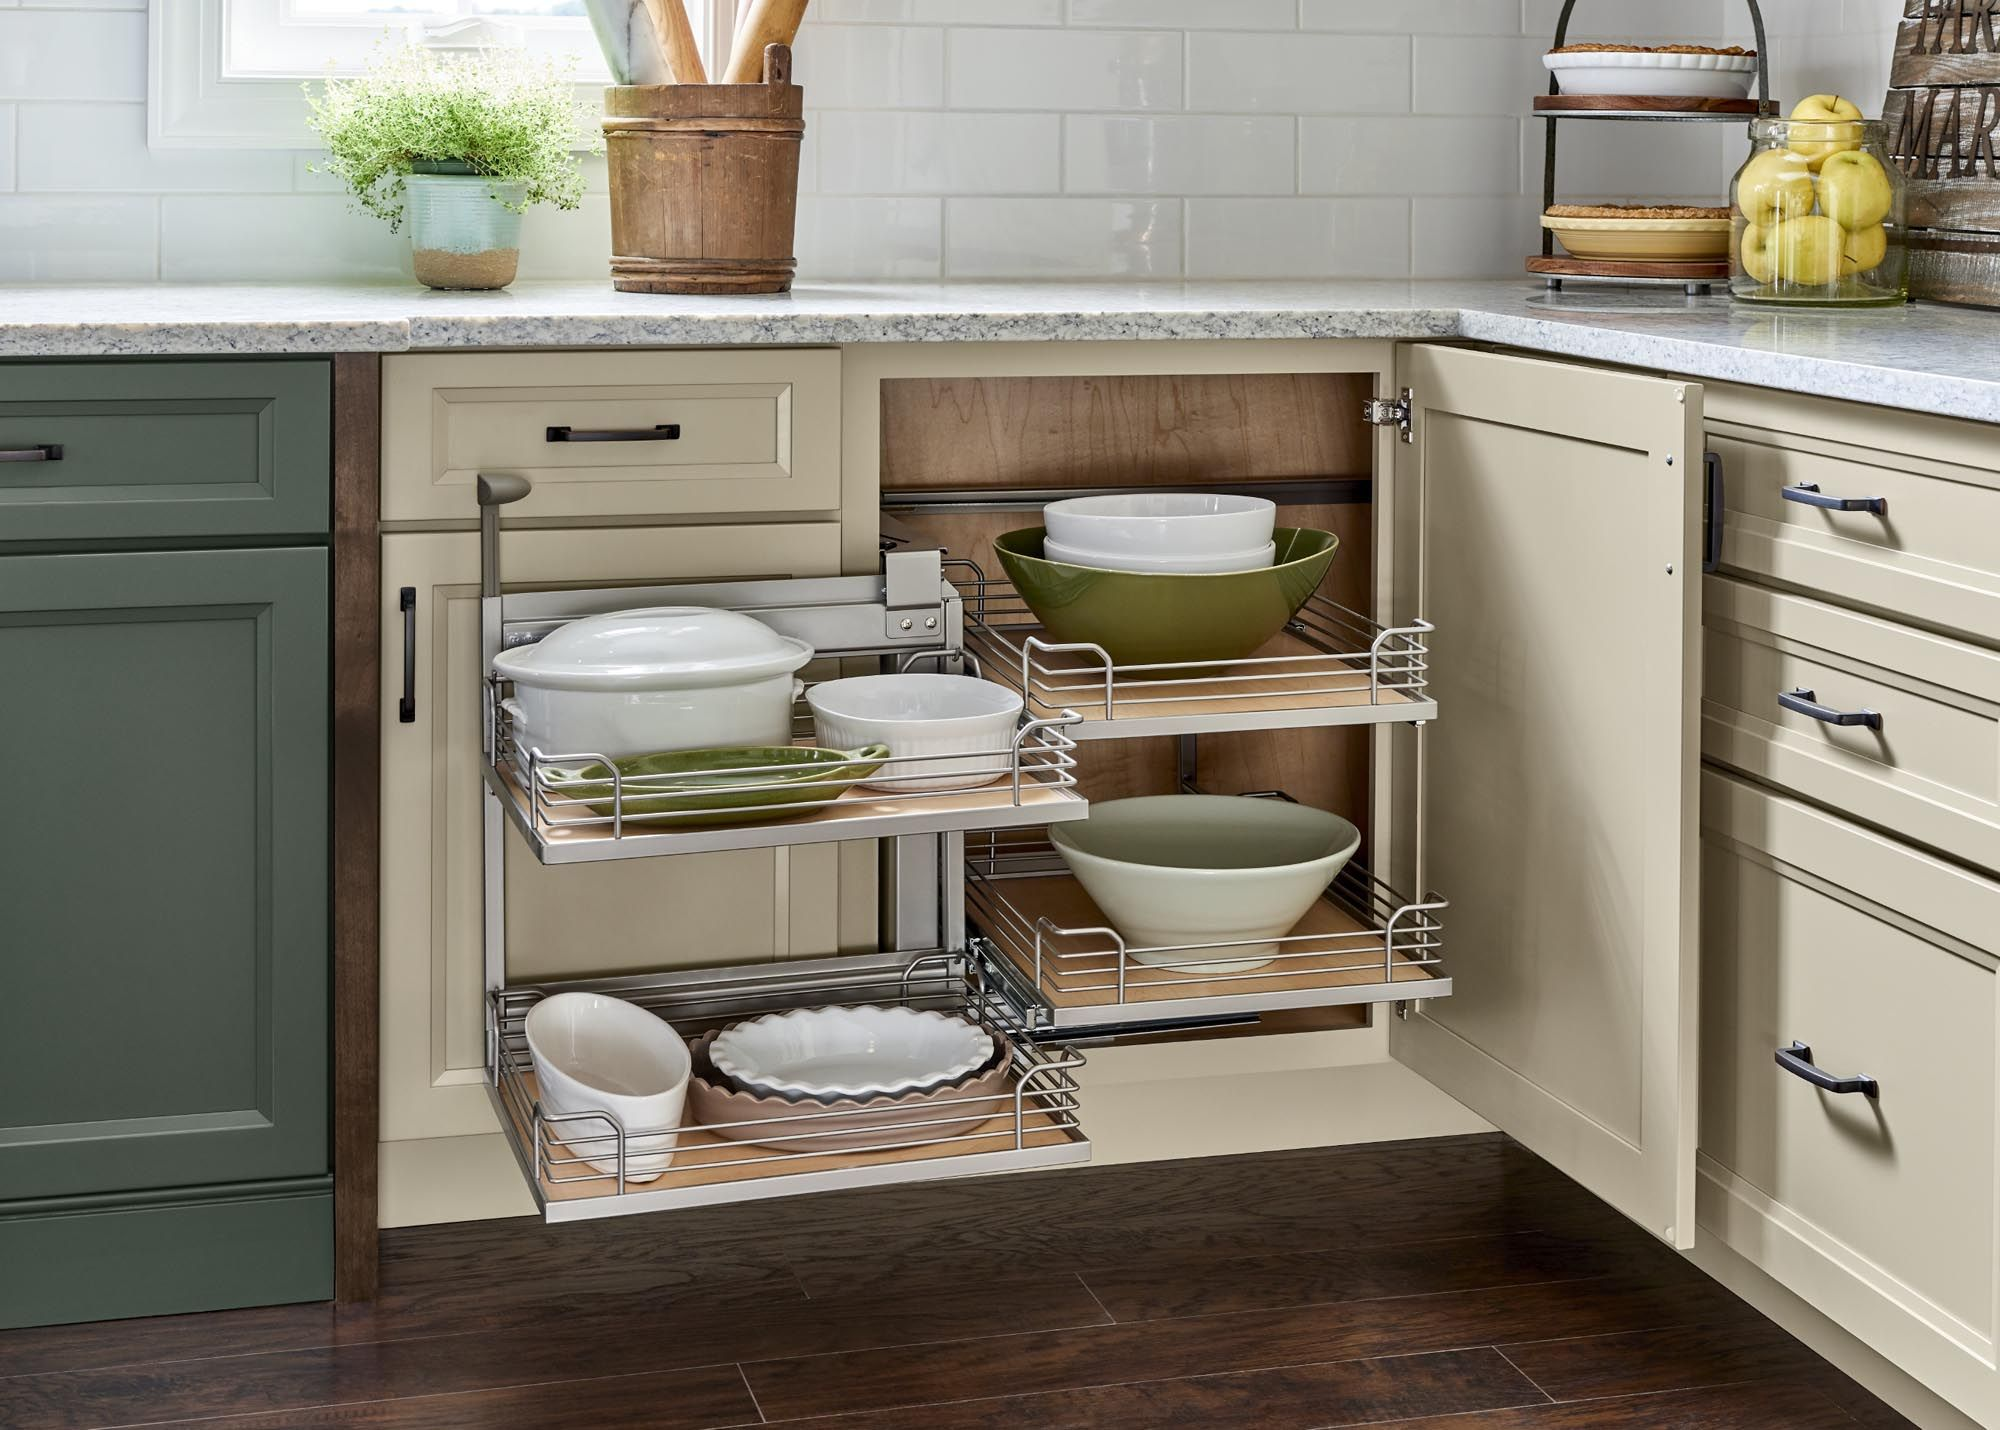 Yorktowne Cabinetry Corner Base Cabinet Pull Out In 2020 Corner Base Cabinet Kitchen Remodel Interior Design Kitchen